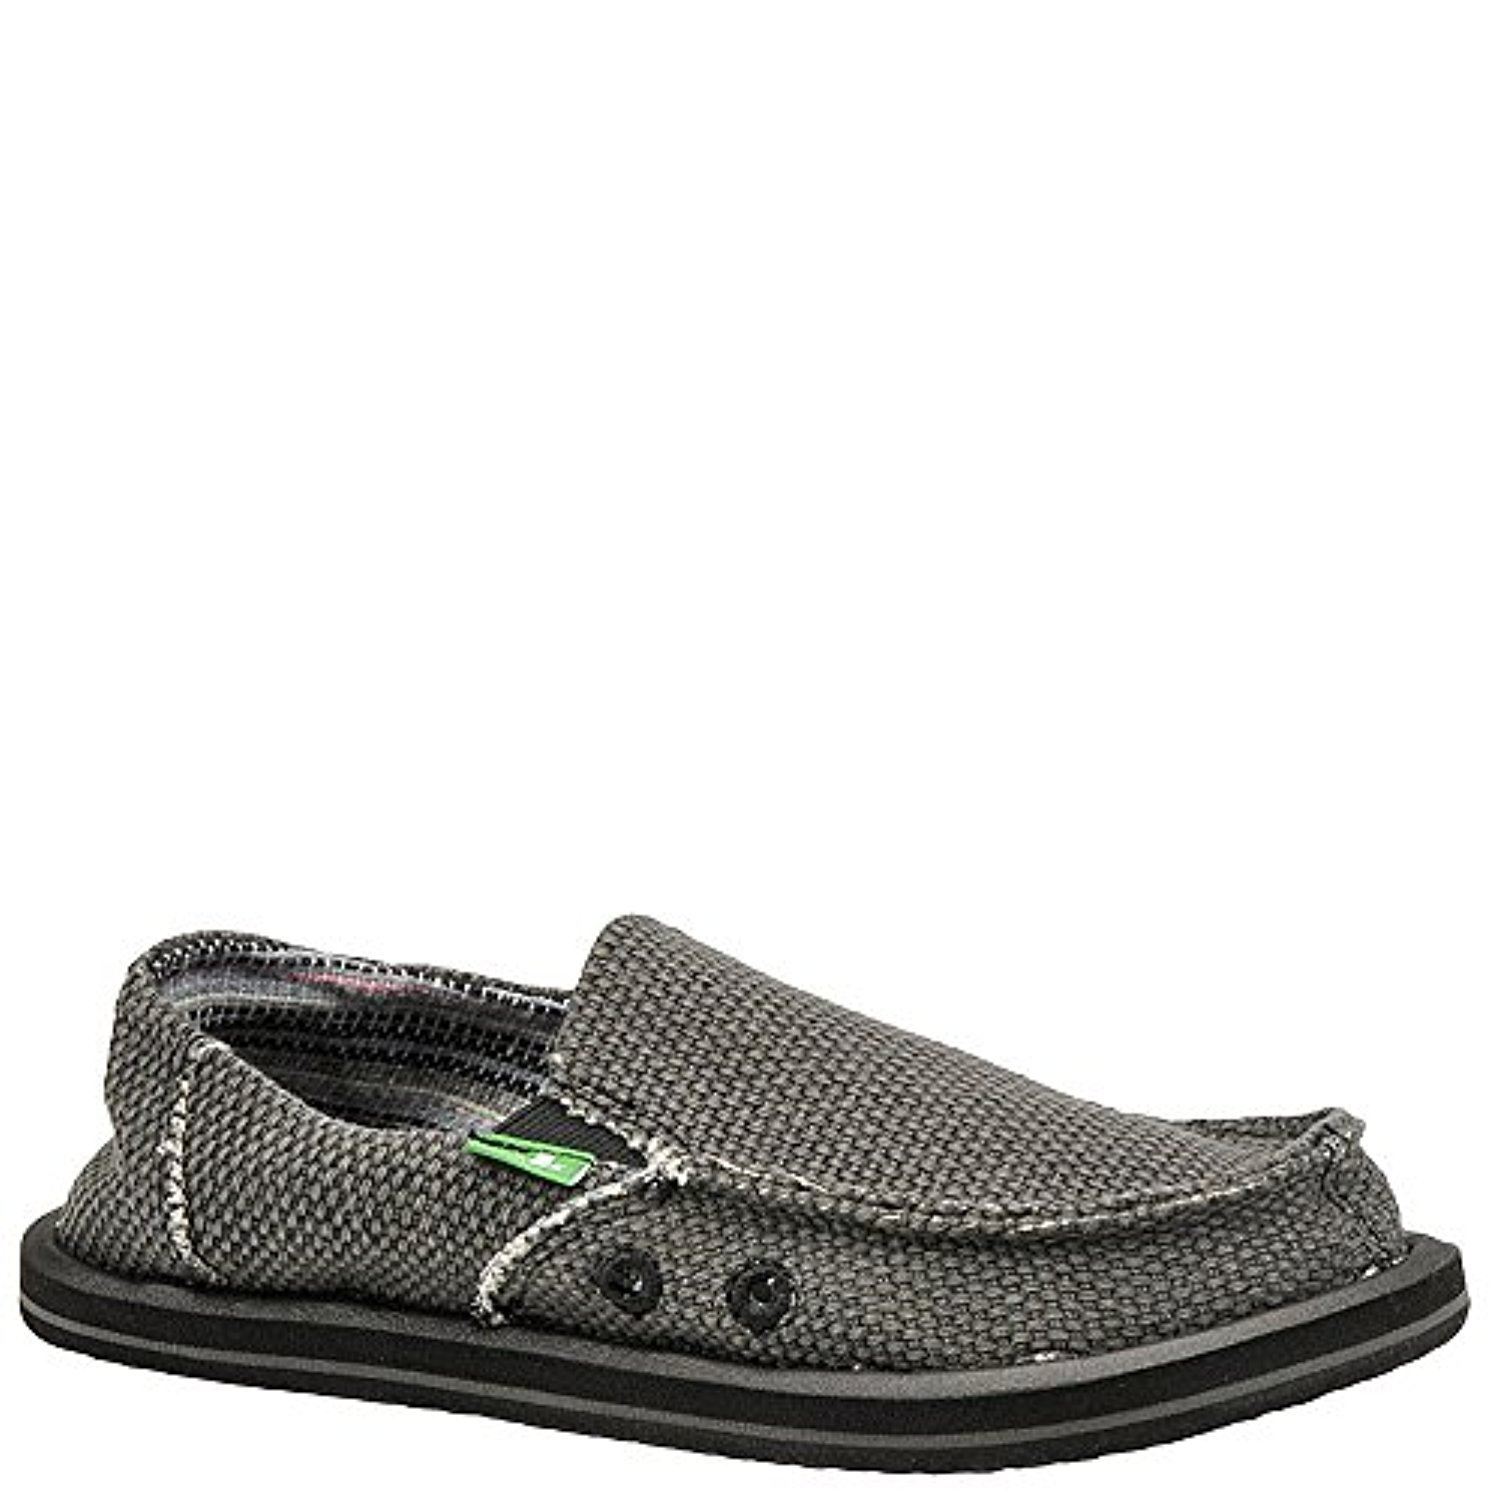 Sanuk Boys' Youth Vagabond Boys Sidewalk Surfer Black 6 & Oxy Cleaner Bundle